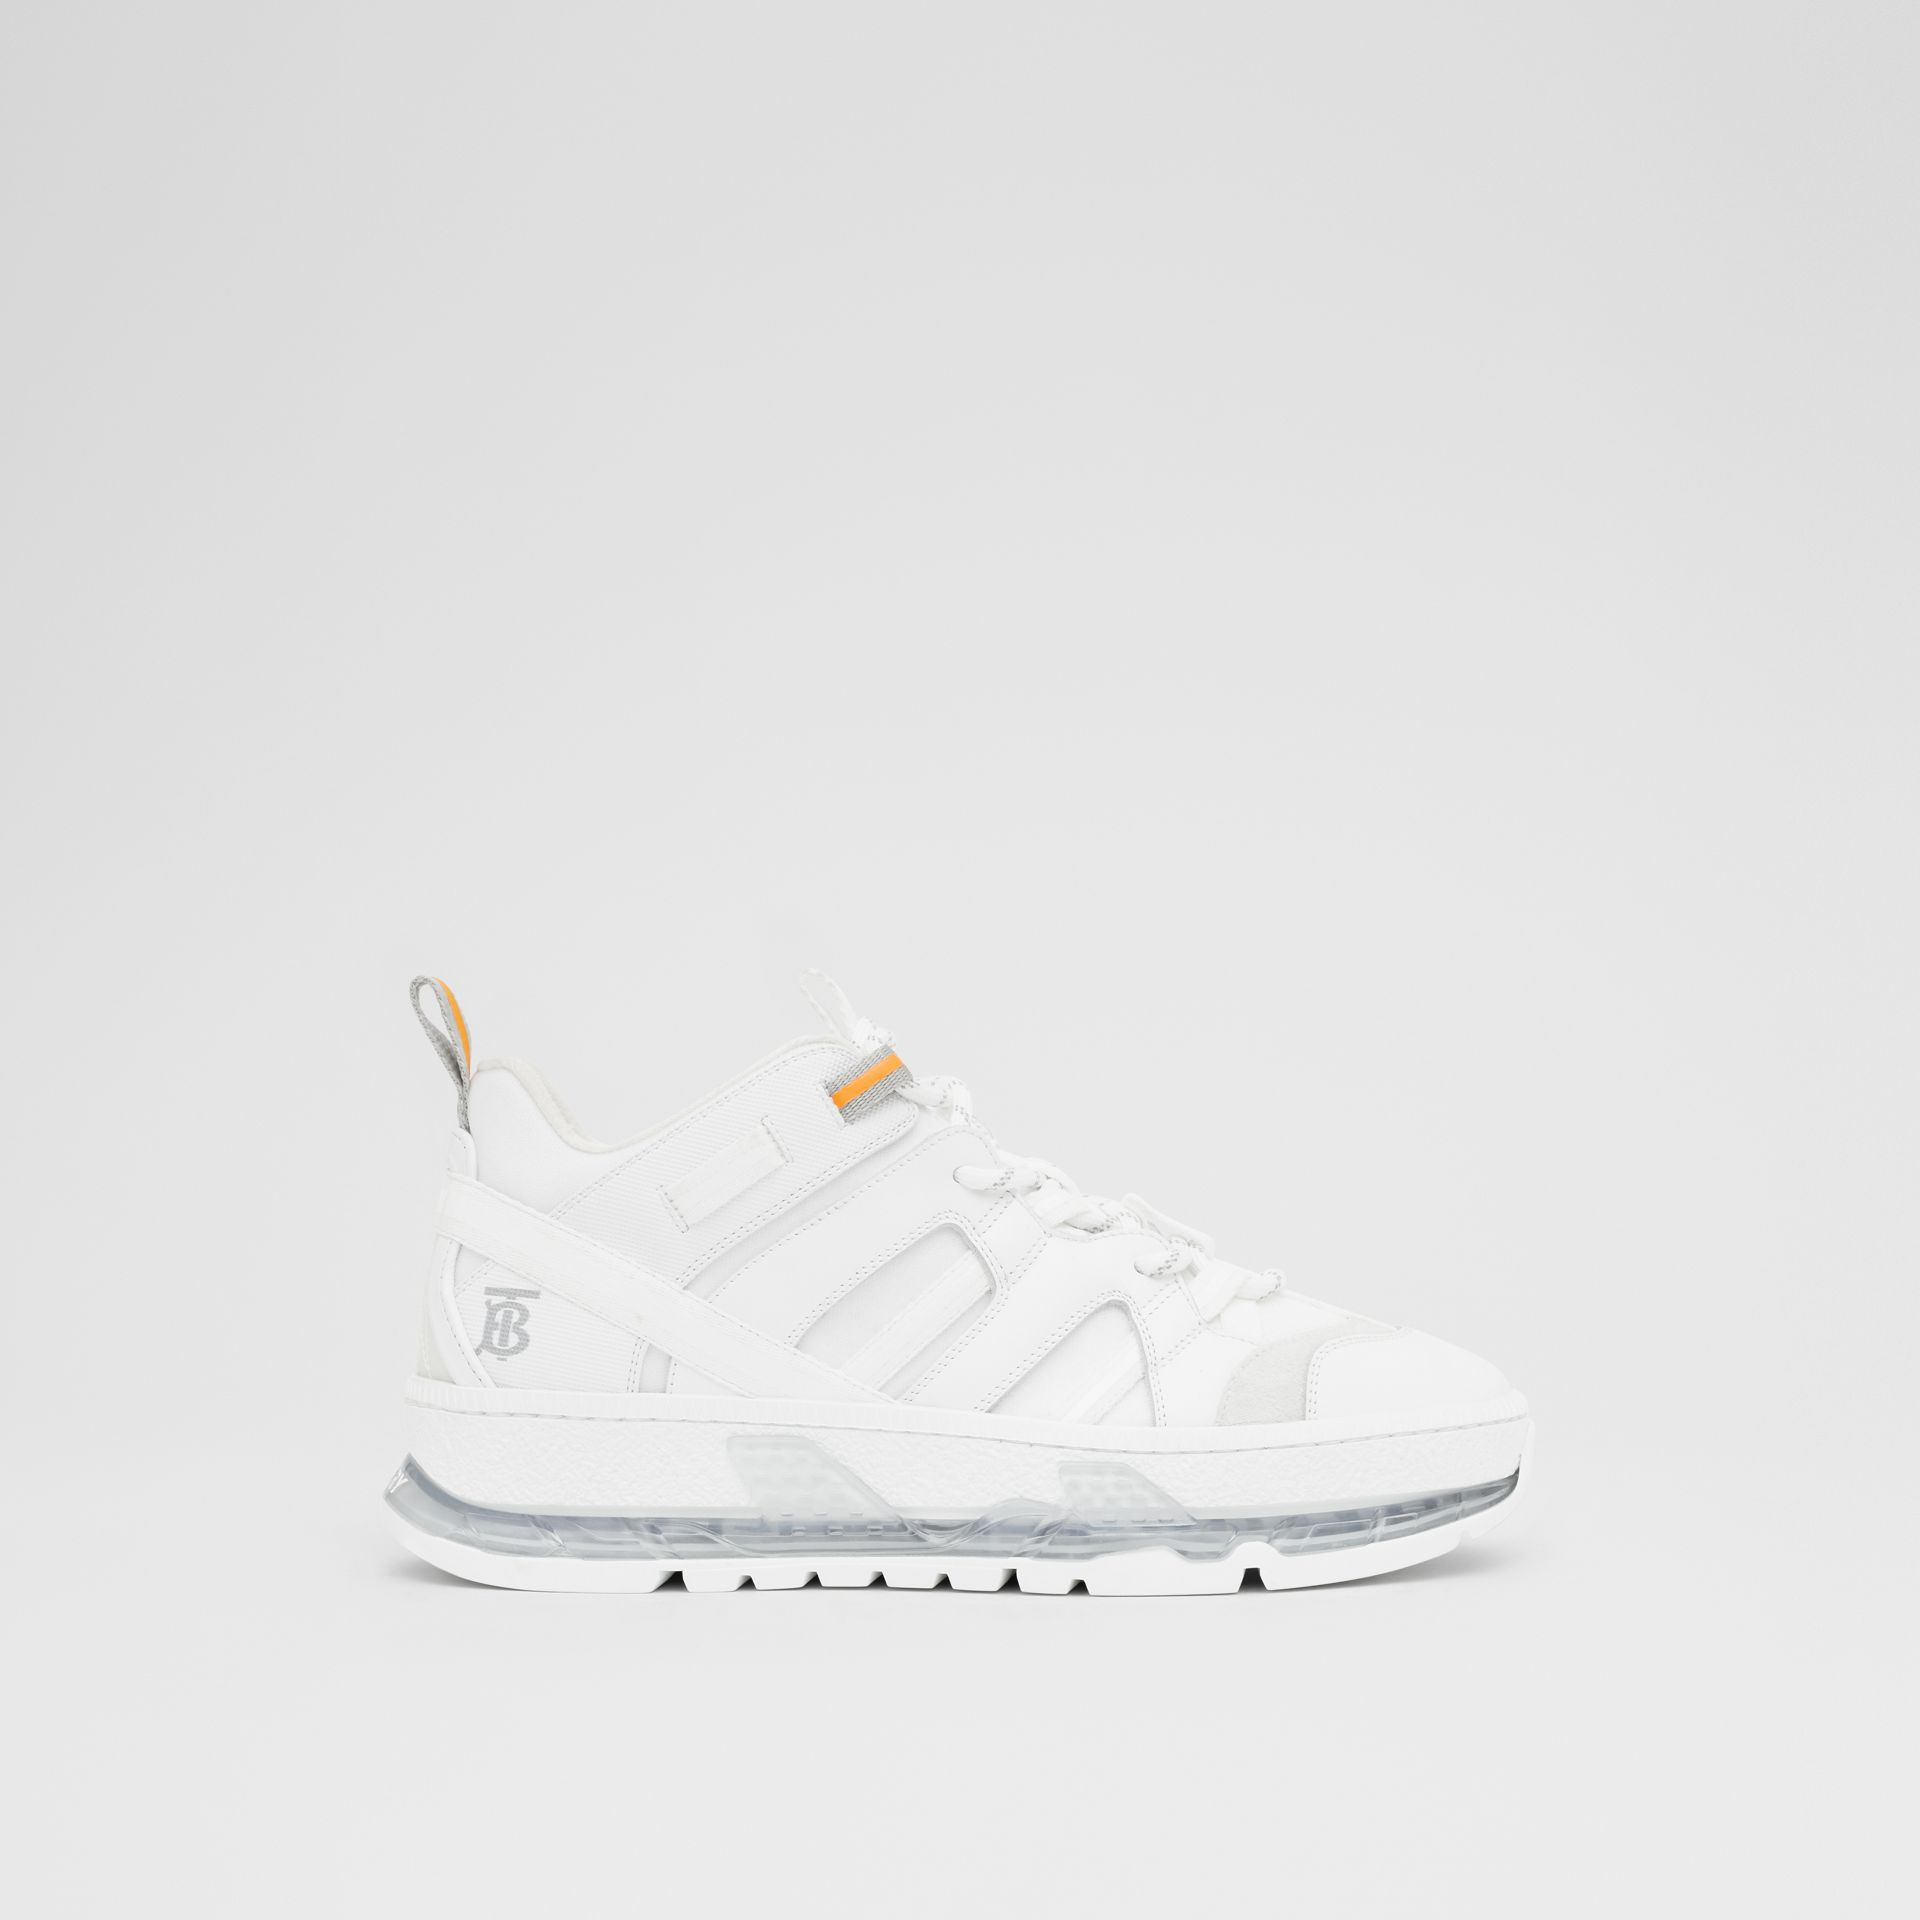 Sneakers Union en nylon et cuir (Blanc Optique) - Femme | Burberry - photo de la galerie 5